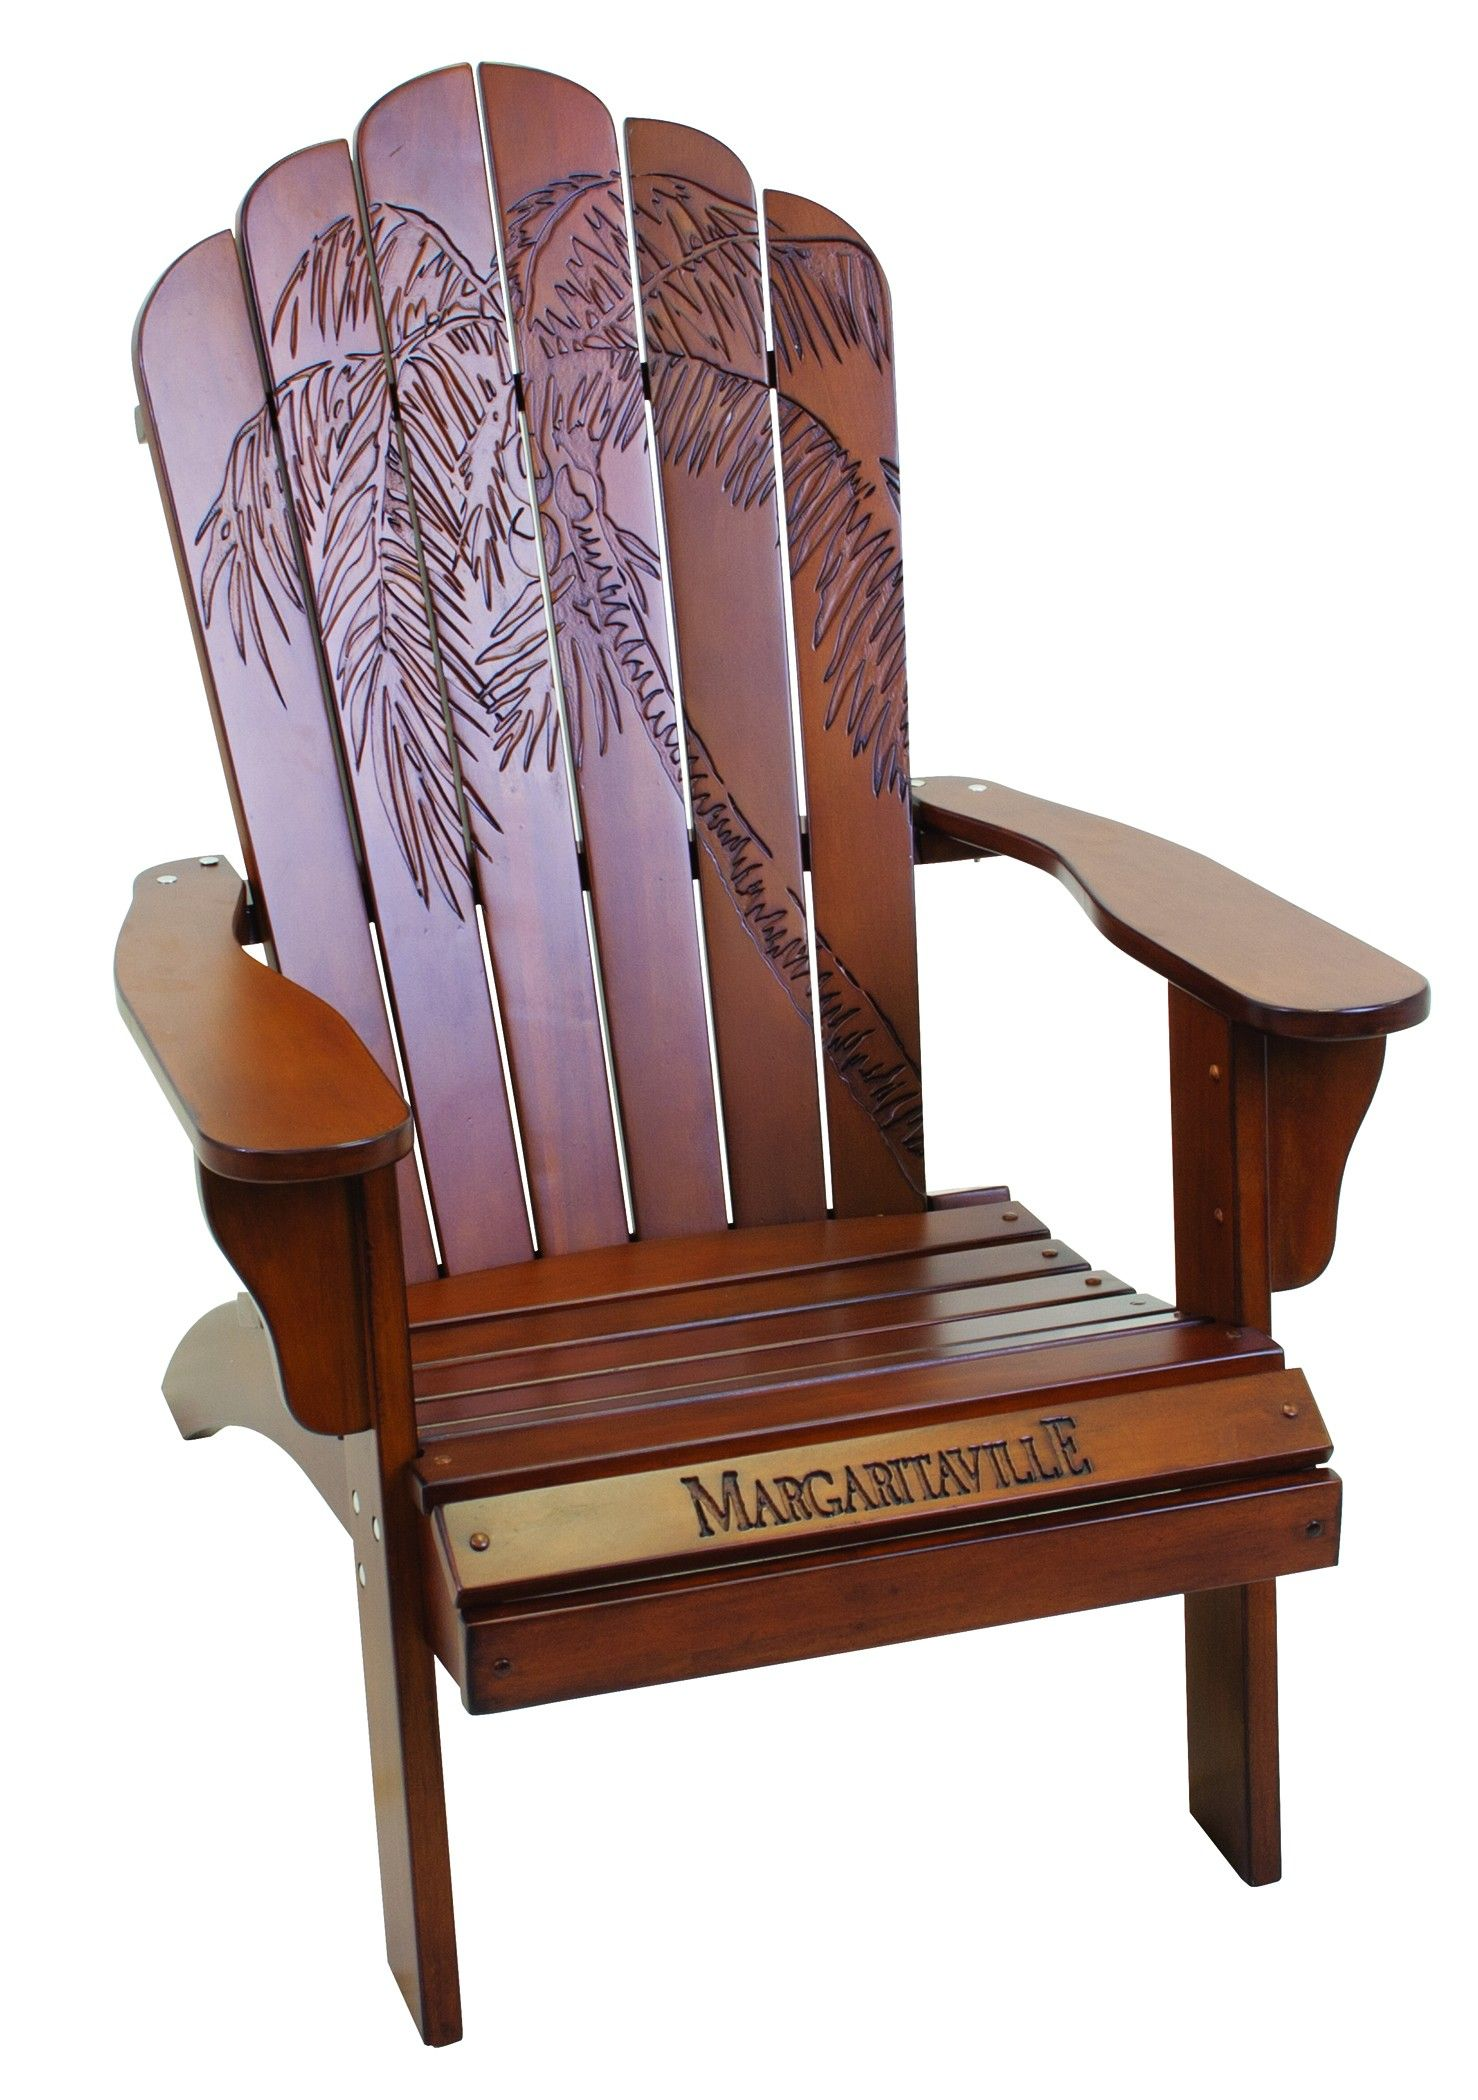 Margaritaville Adirondack Chairs Margarita Ville Chair Margaritaville Wood Carved Quotpalm